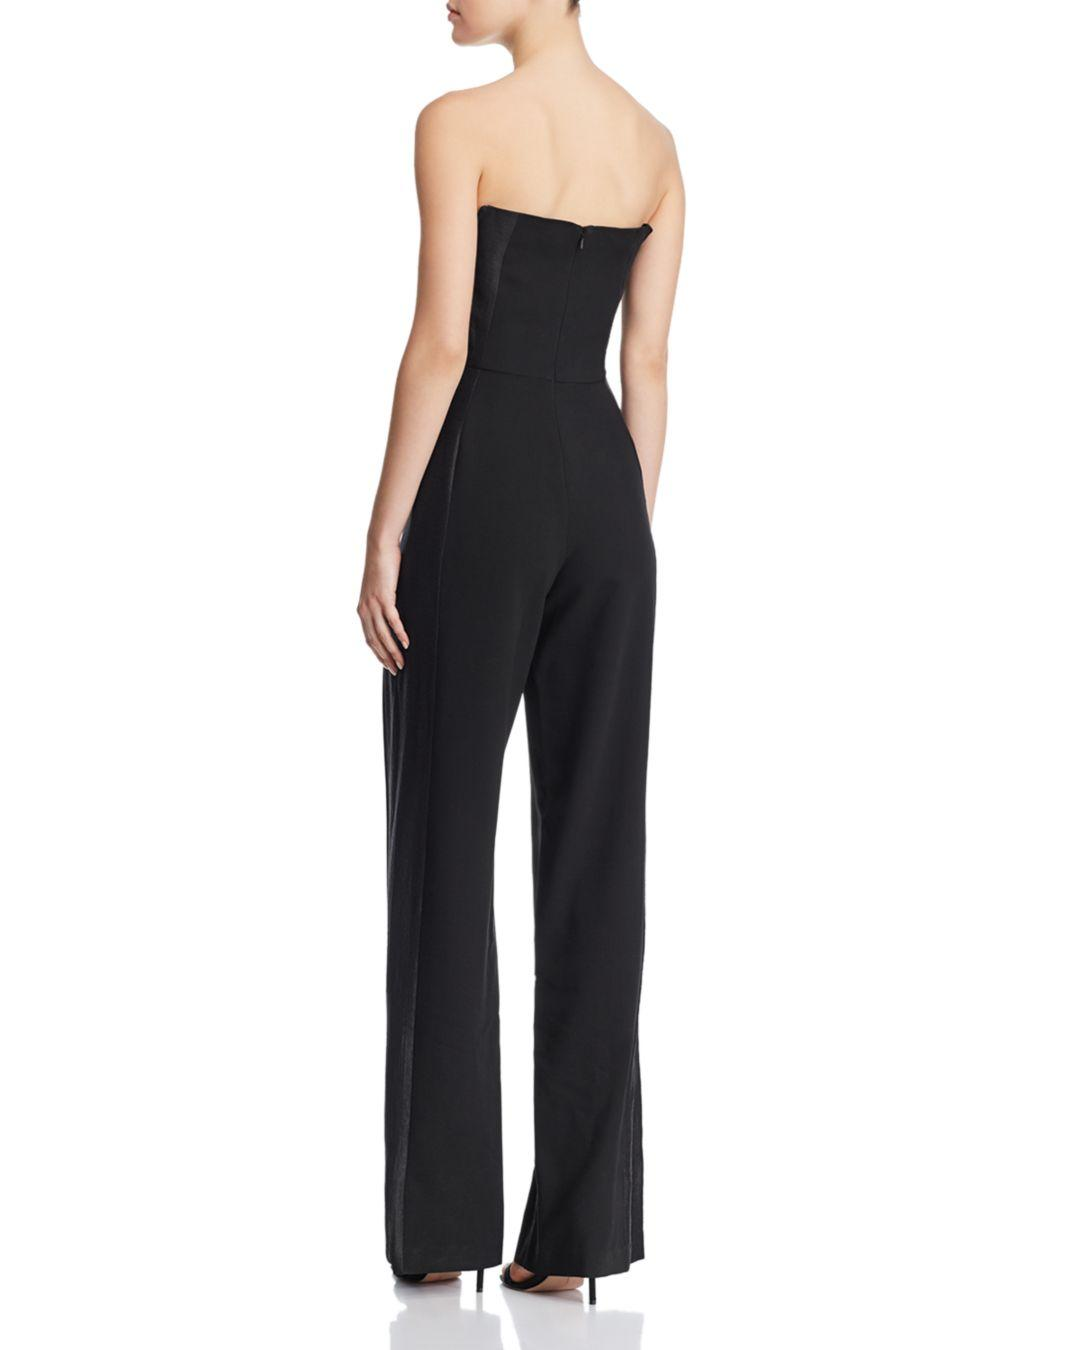 e8c2dd02052 Black Halo Lena Strapless Jumpsuit in Black - Lyst